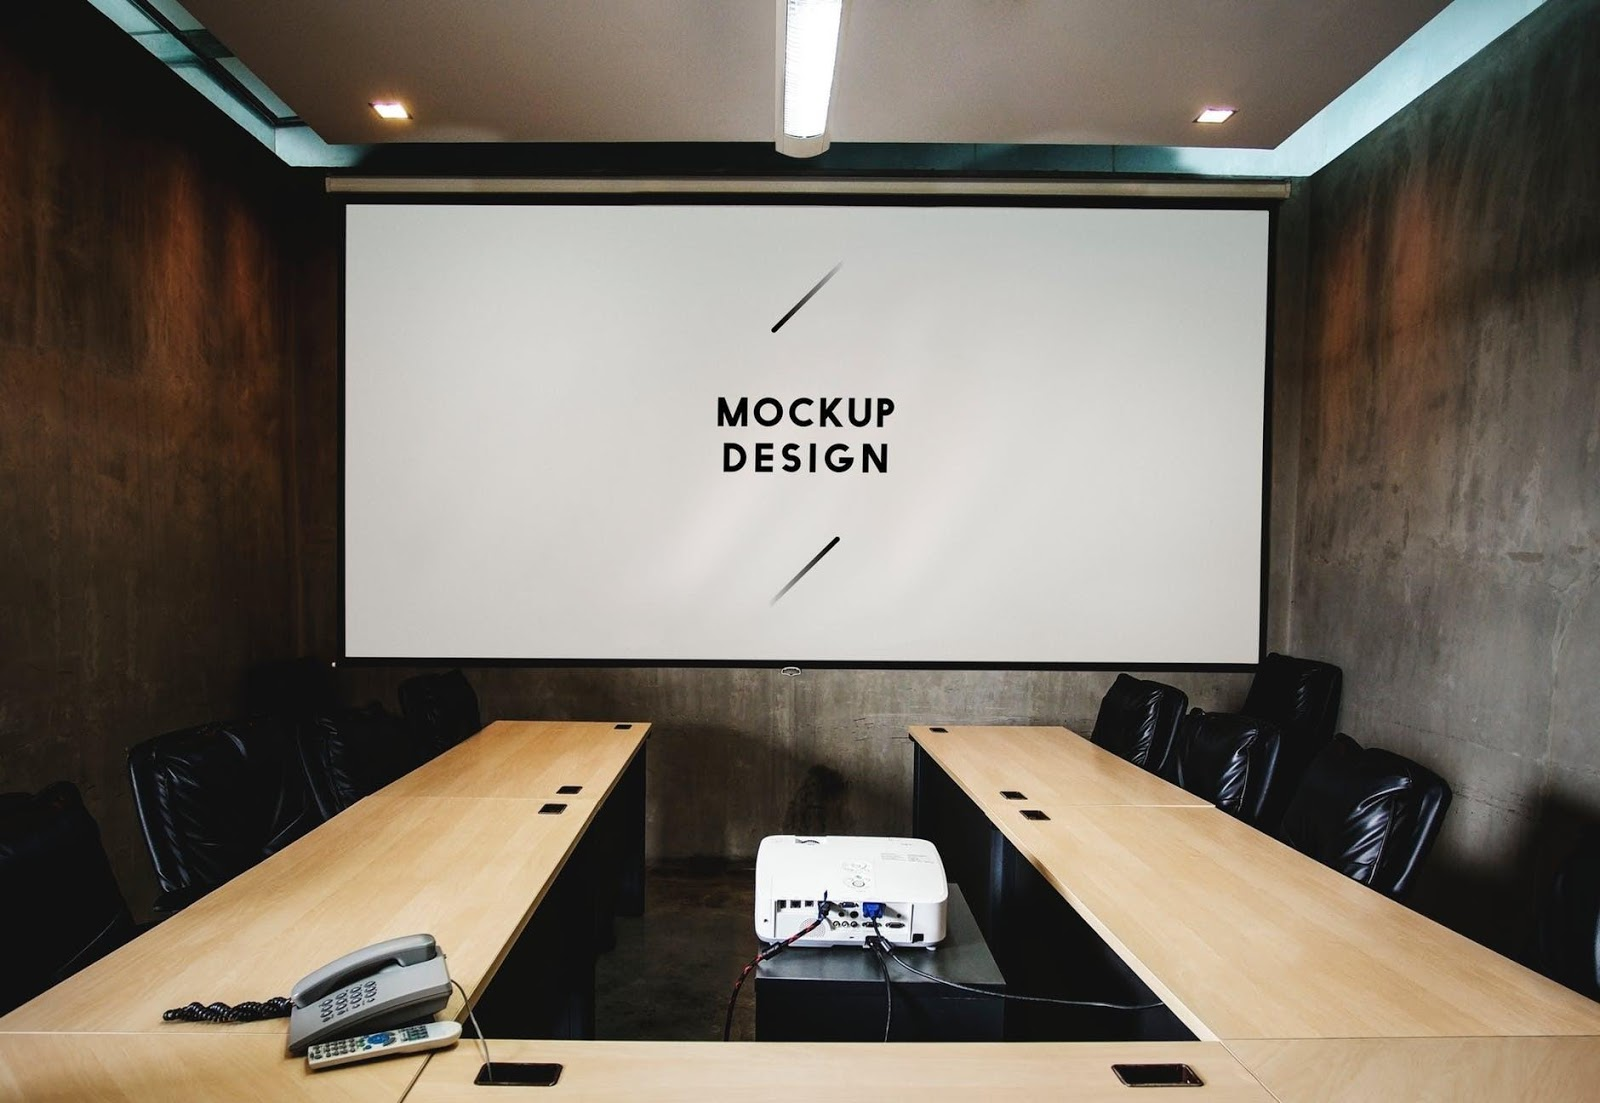 7 Stylish Conference Table Setup Ideas For Coworking Spaces